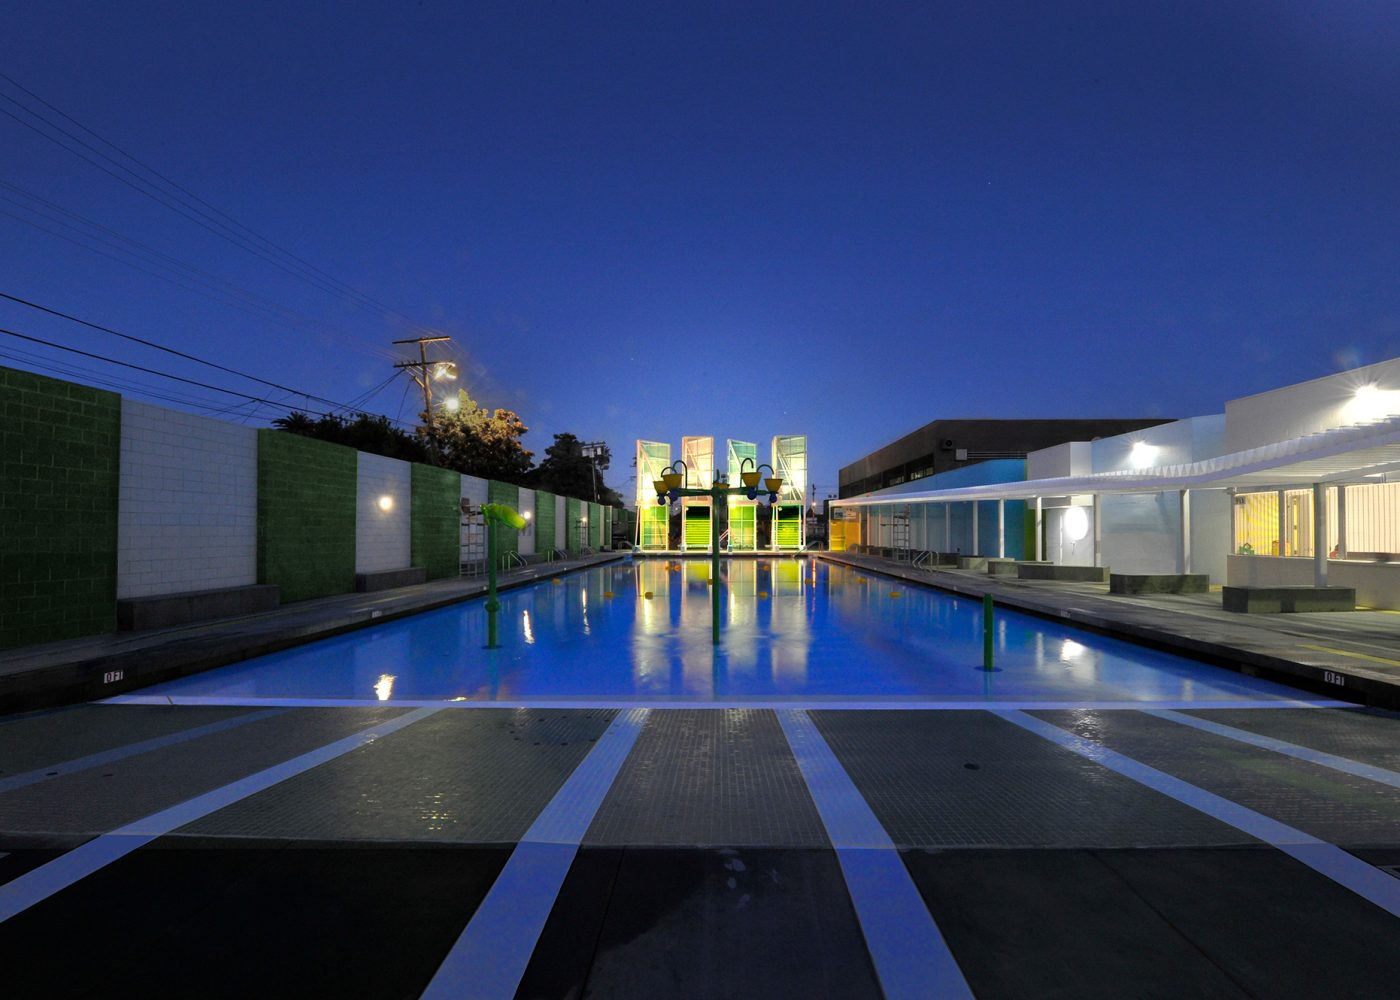 CENTRAL POOL_10